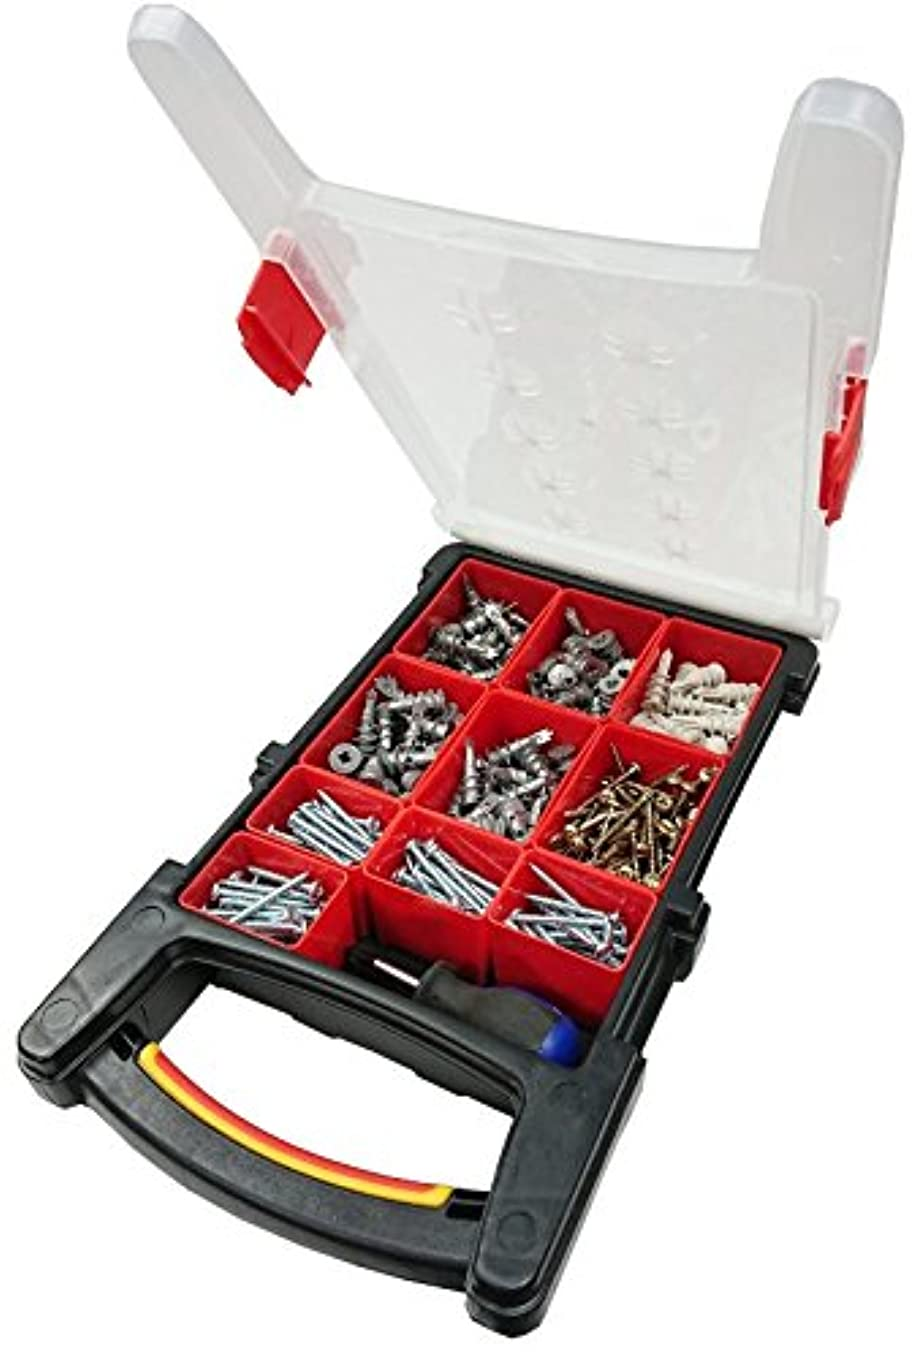 Bulk Hardware BH06619 Assortment of Redi-Driva Cavity Fixings, Hollow Wall Anchors, Screws & 38mm Screwdriver in a 12 Compartment Carry Case.